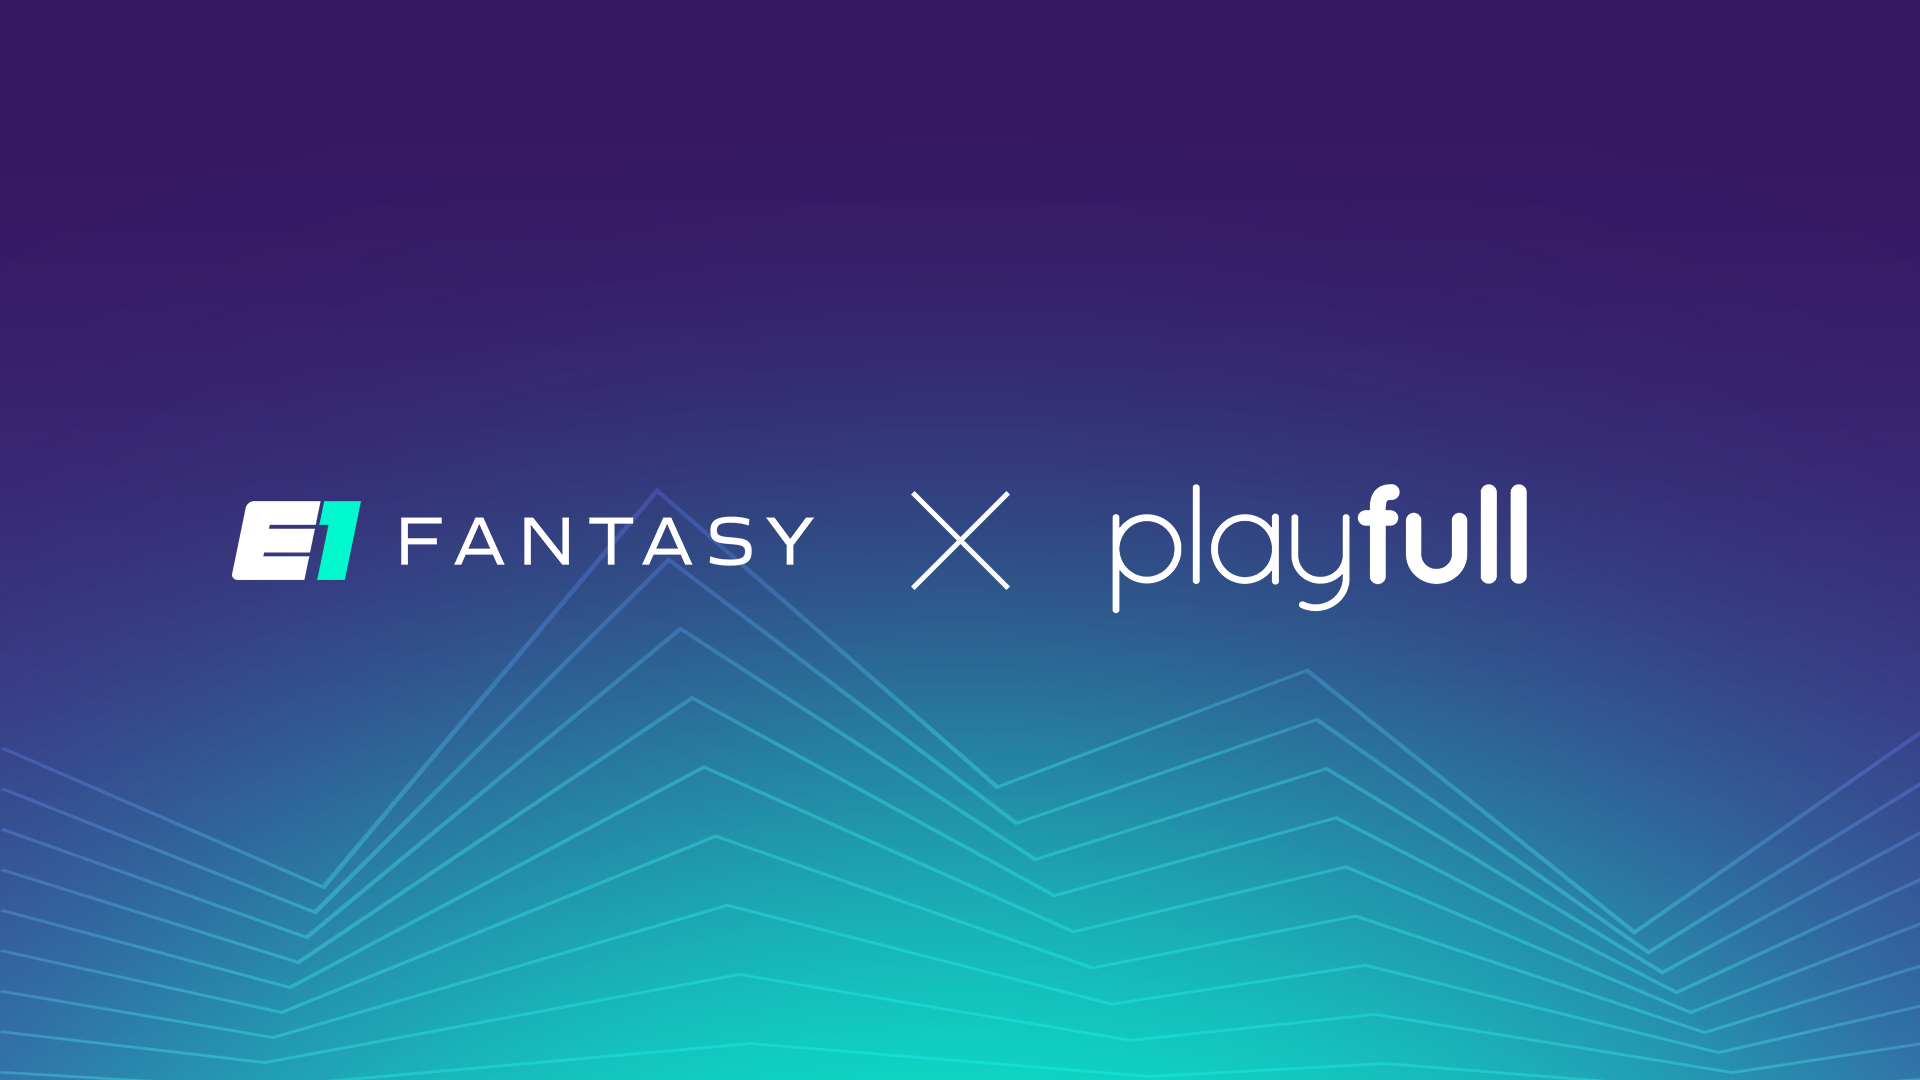 Playfull and E1 Fantasy partnership